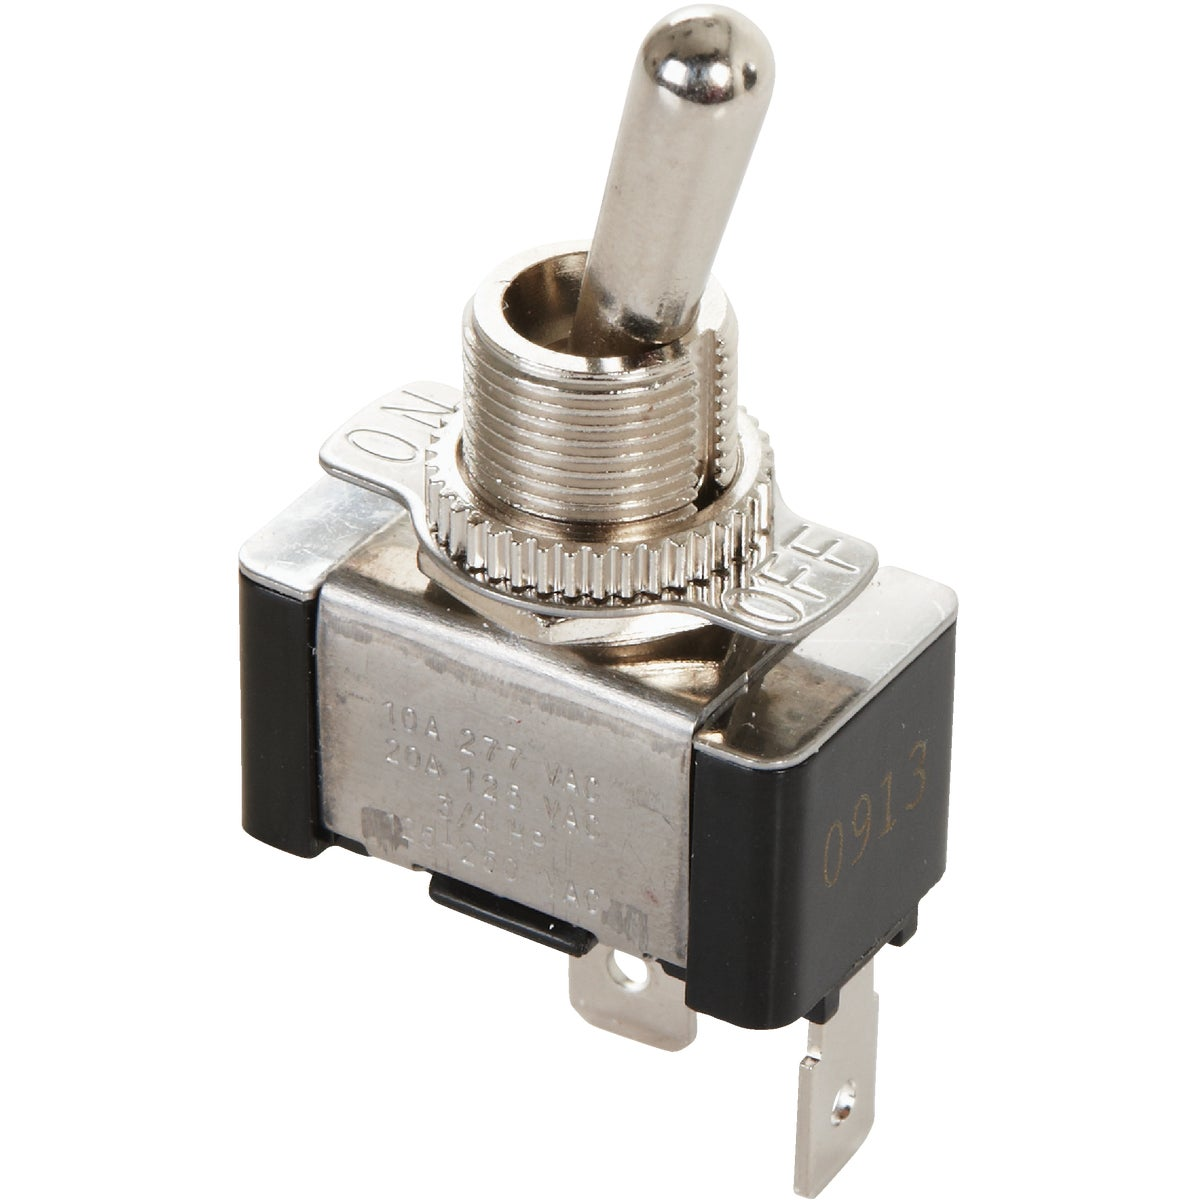 HEAVY DUTY TOGGLE SWITCH - GSW-121 by G B Electrical Inc